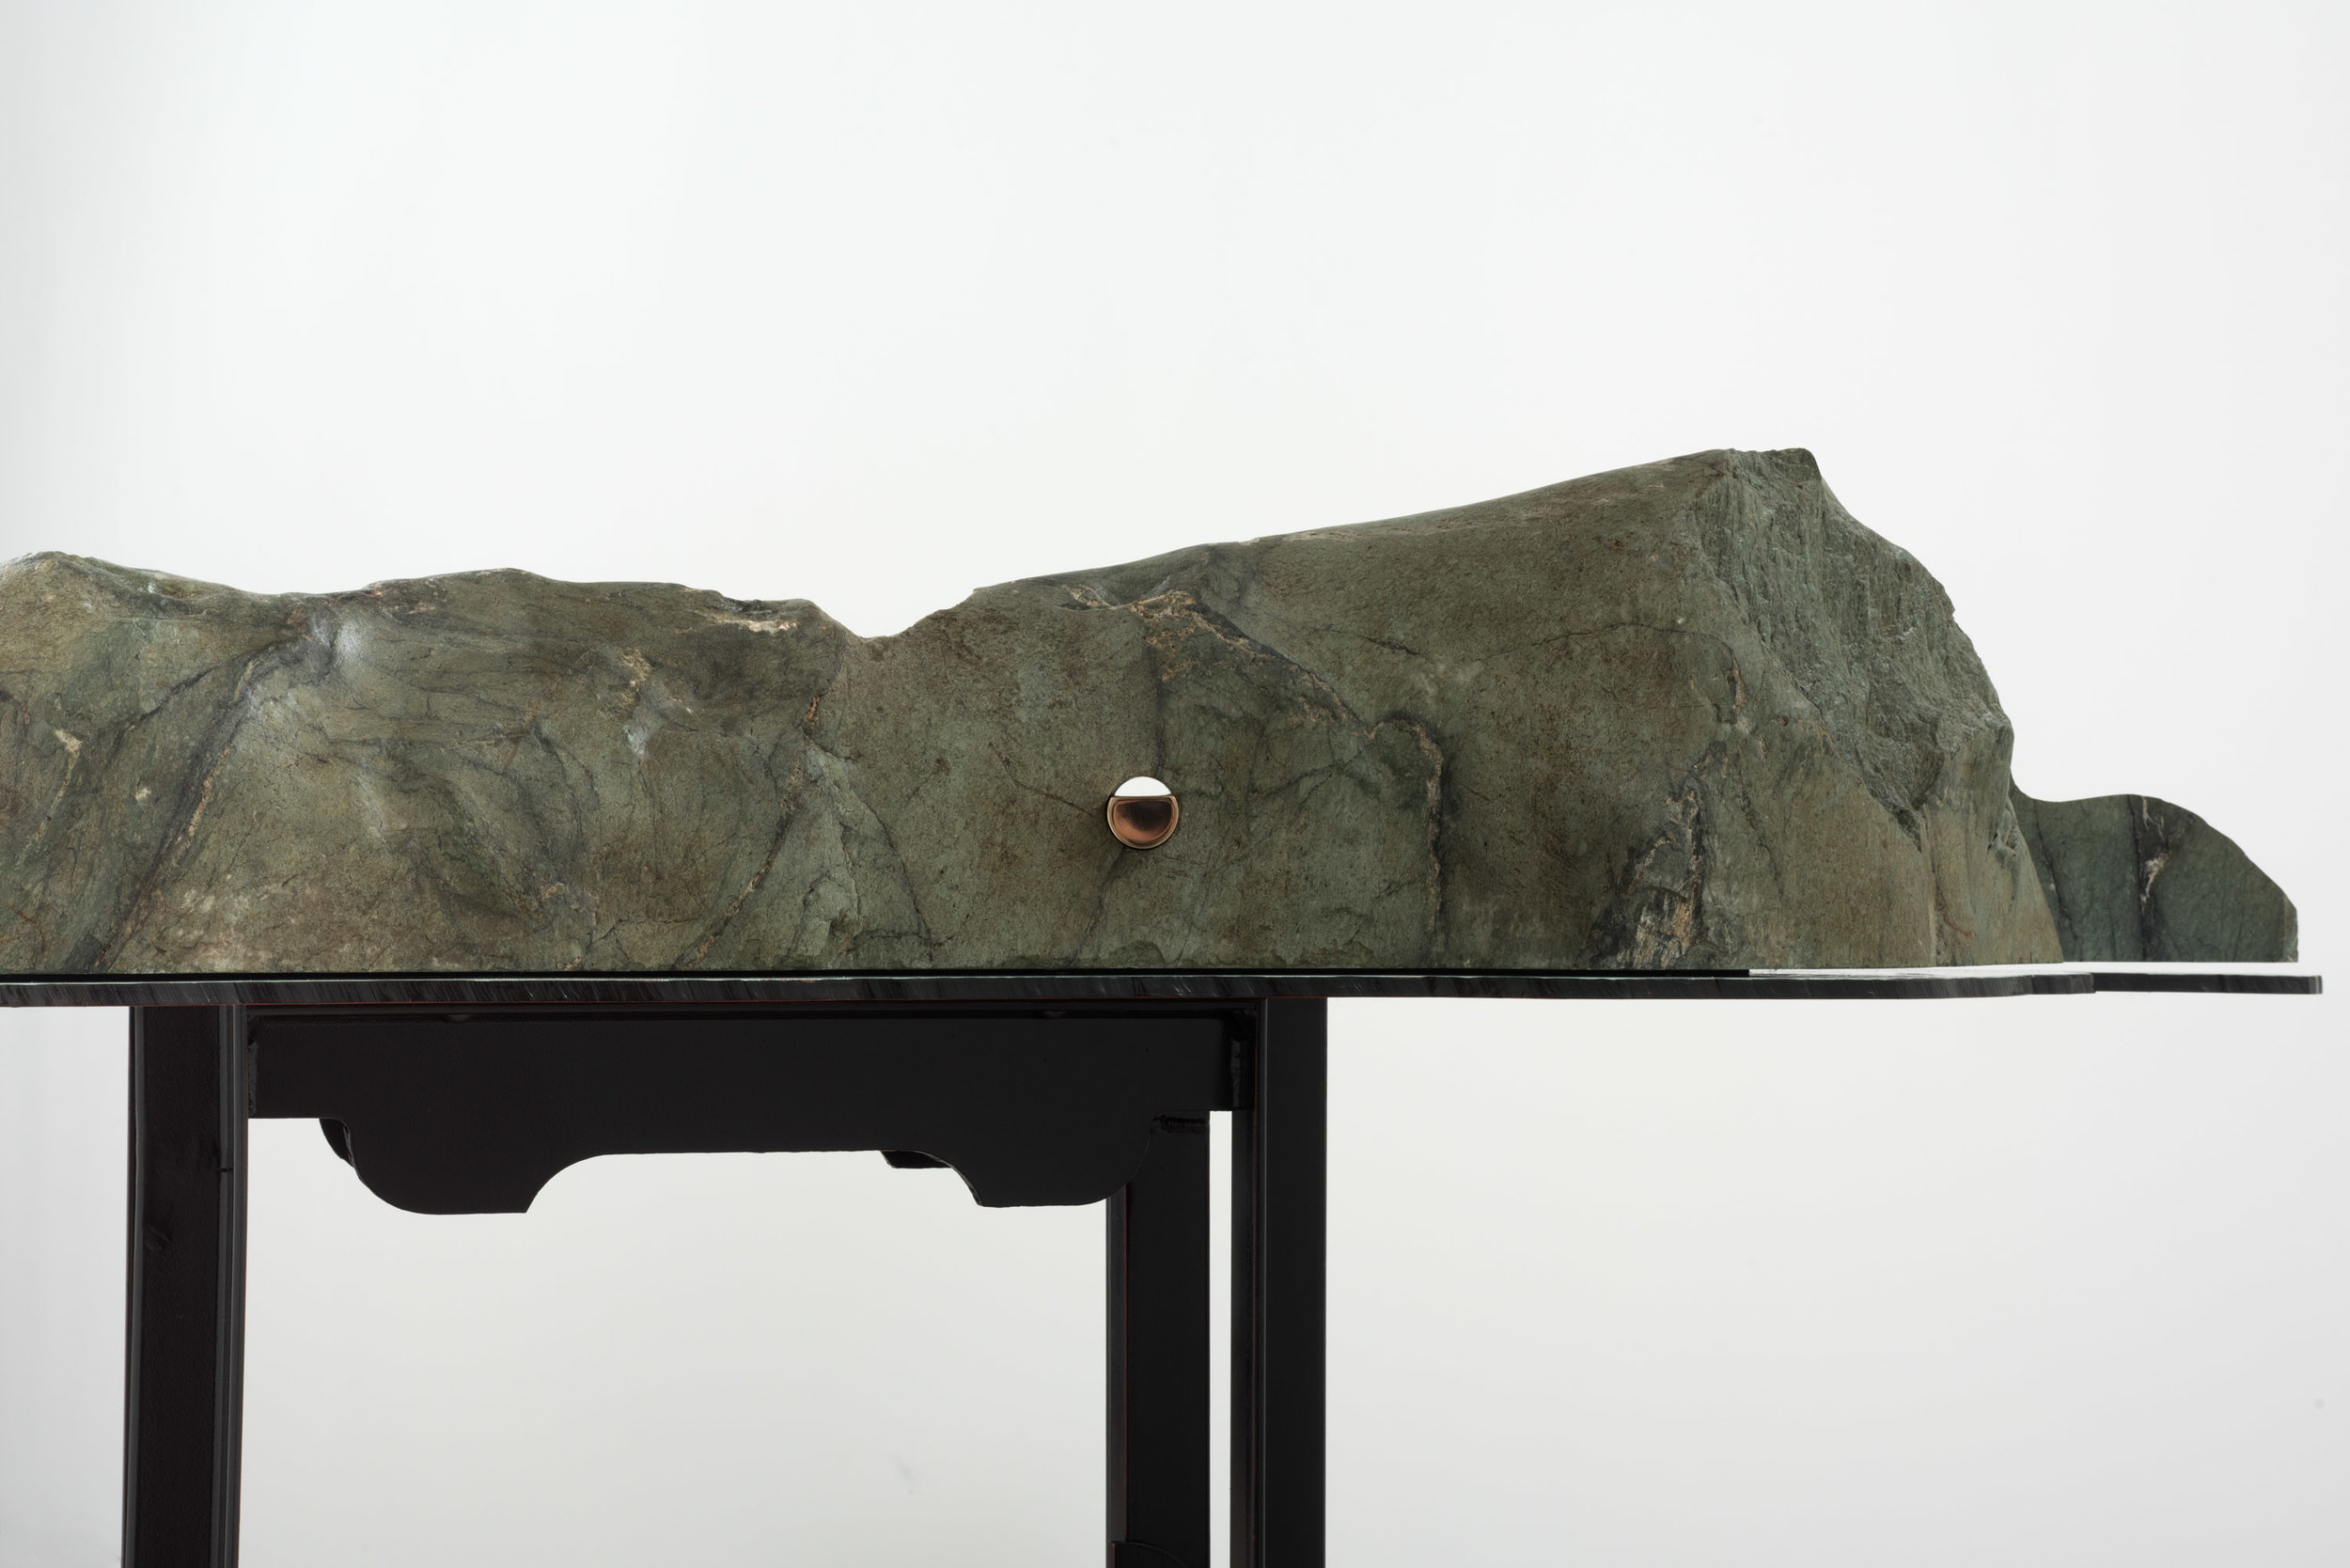 II Model of an Earth Fastener on the San Andreasm Fault , 2019 Steel, enamel, greenschist, and bronze 52 x 64 x 16 inches